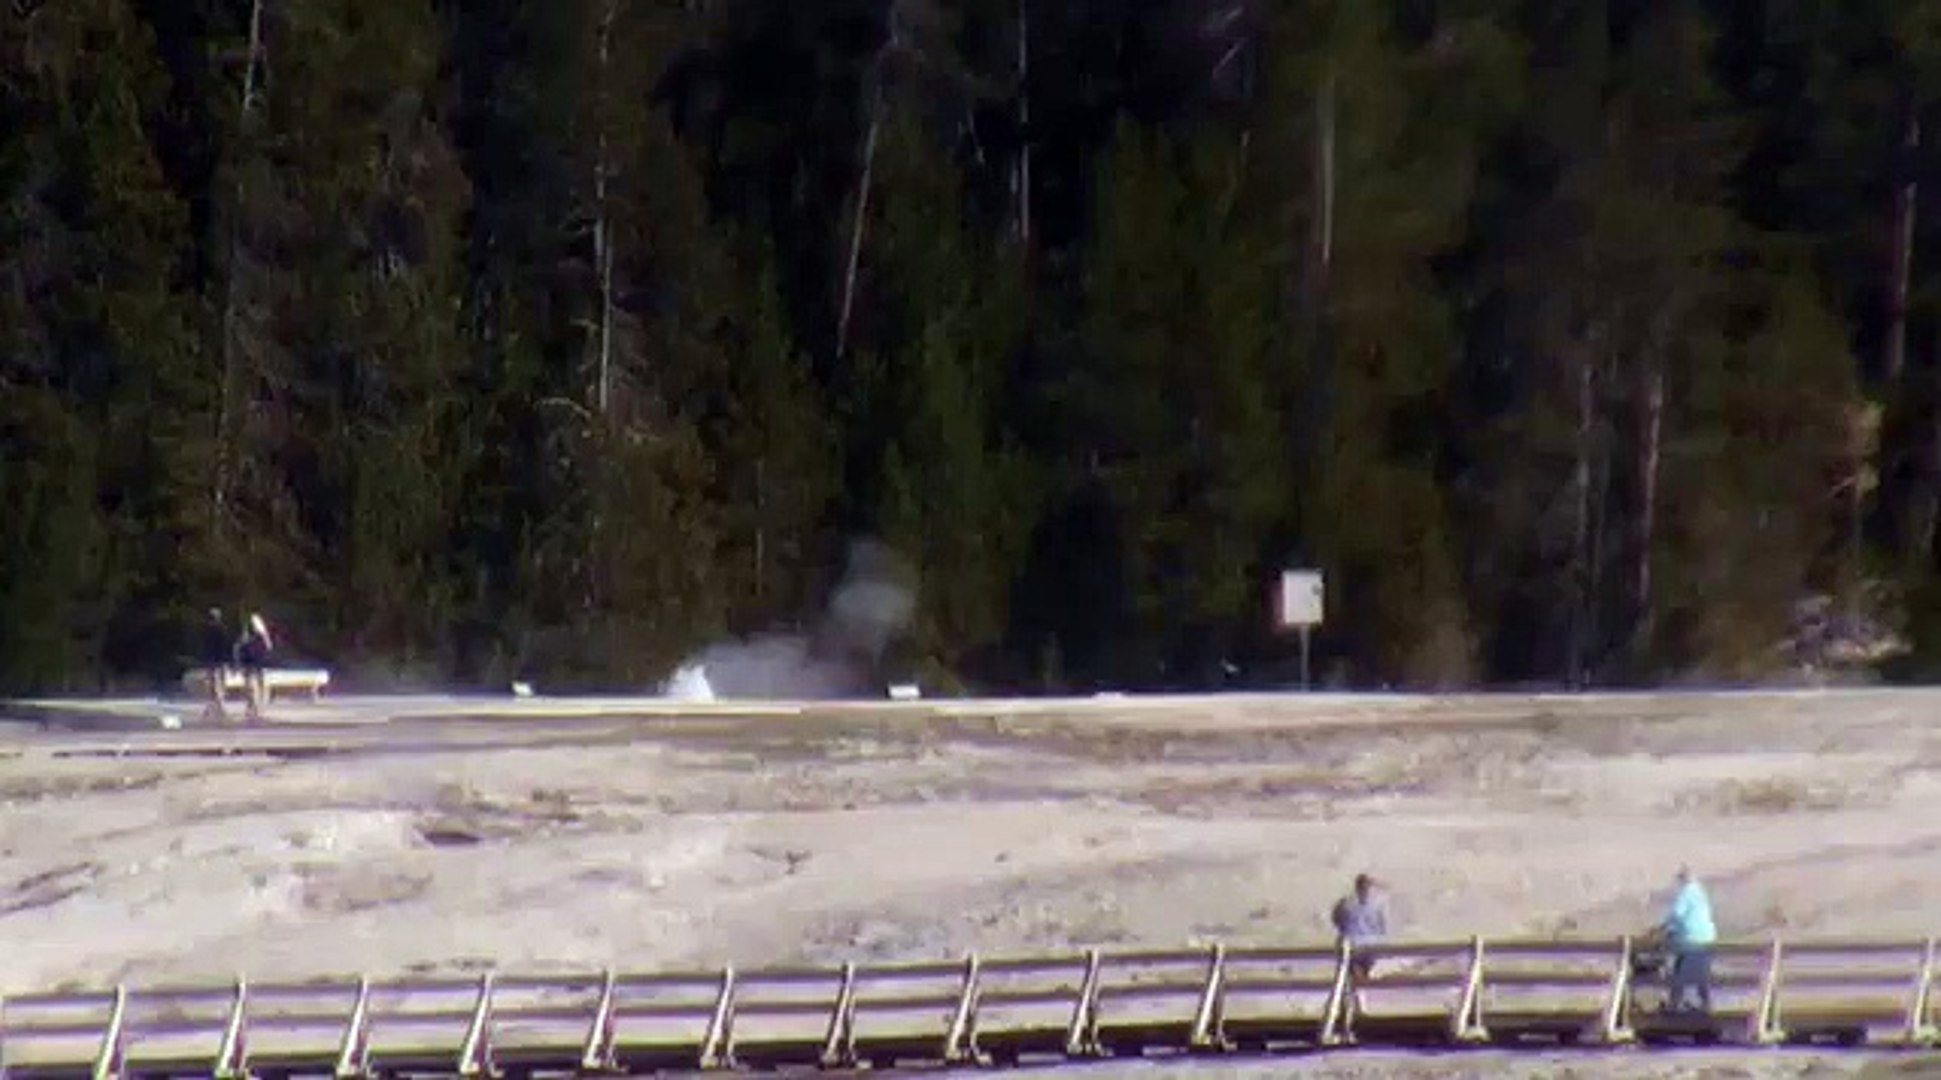 North Goggles Geyser minor eruption (9:23 AM, 26 May 2018)